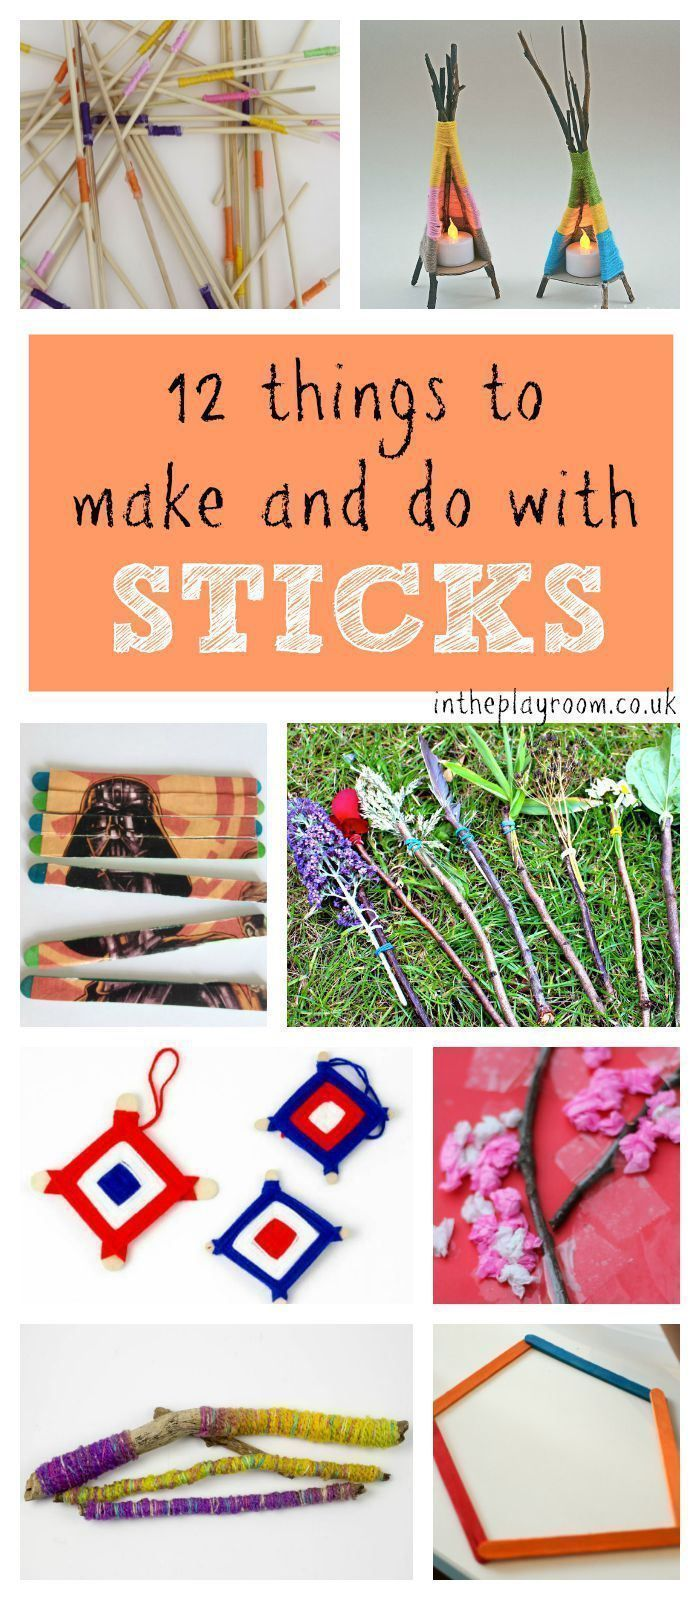 1000 images about kids crafts on pinterest kids crafts for Cool things to make and do